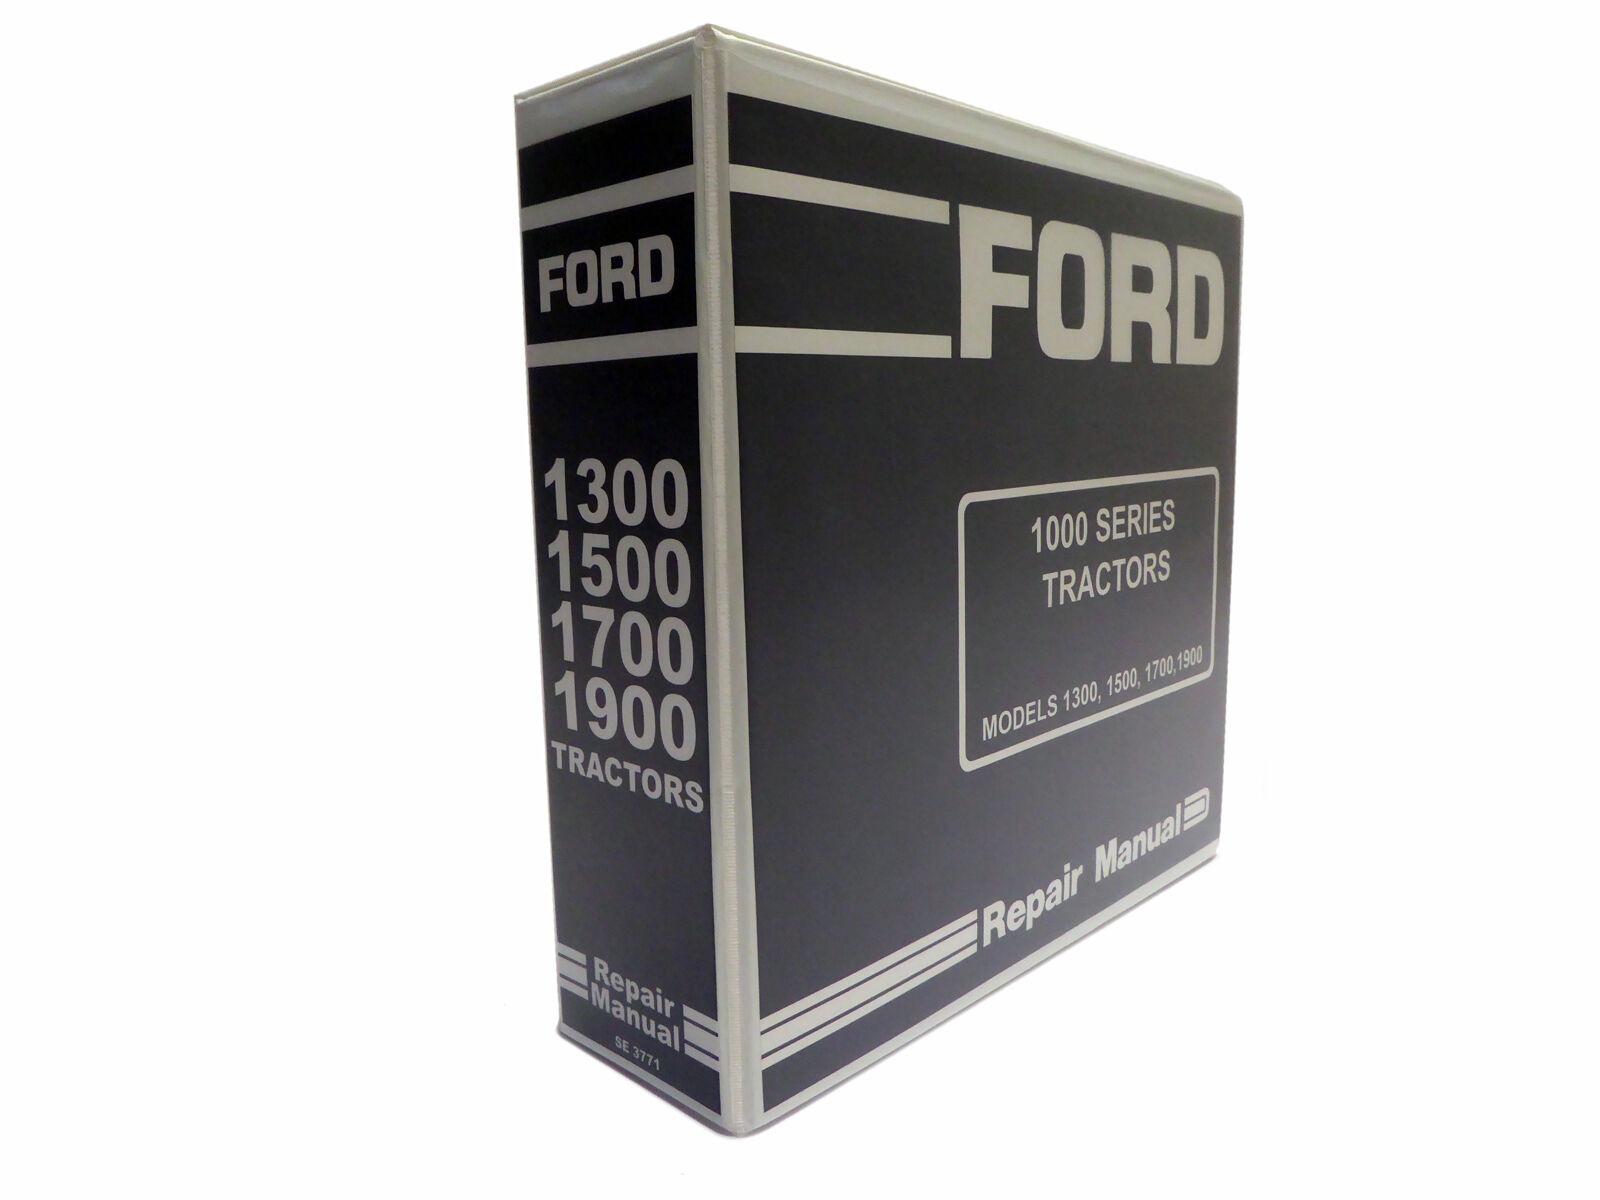 Ford 1300, 1500, 1700, 1900 Tractor Service Manual Repair Shop Book NEW w 1  of 12Only 2 available See More